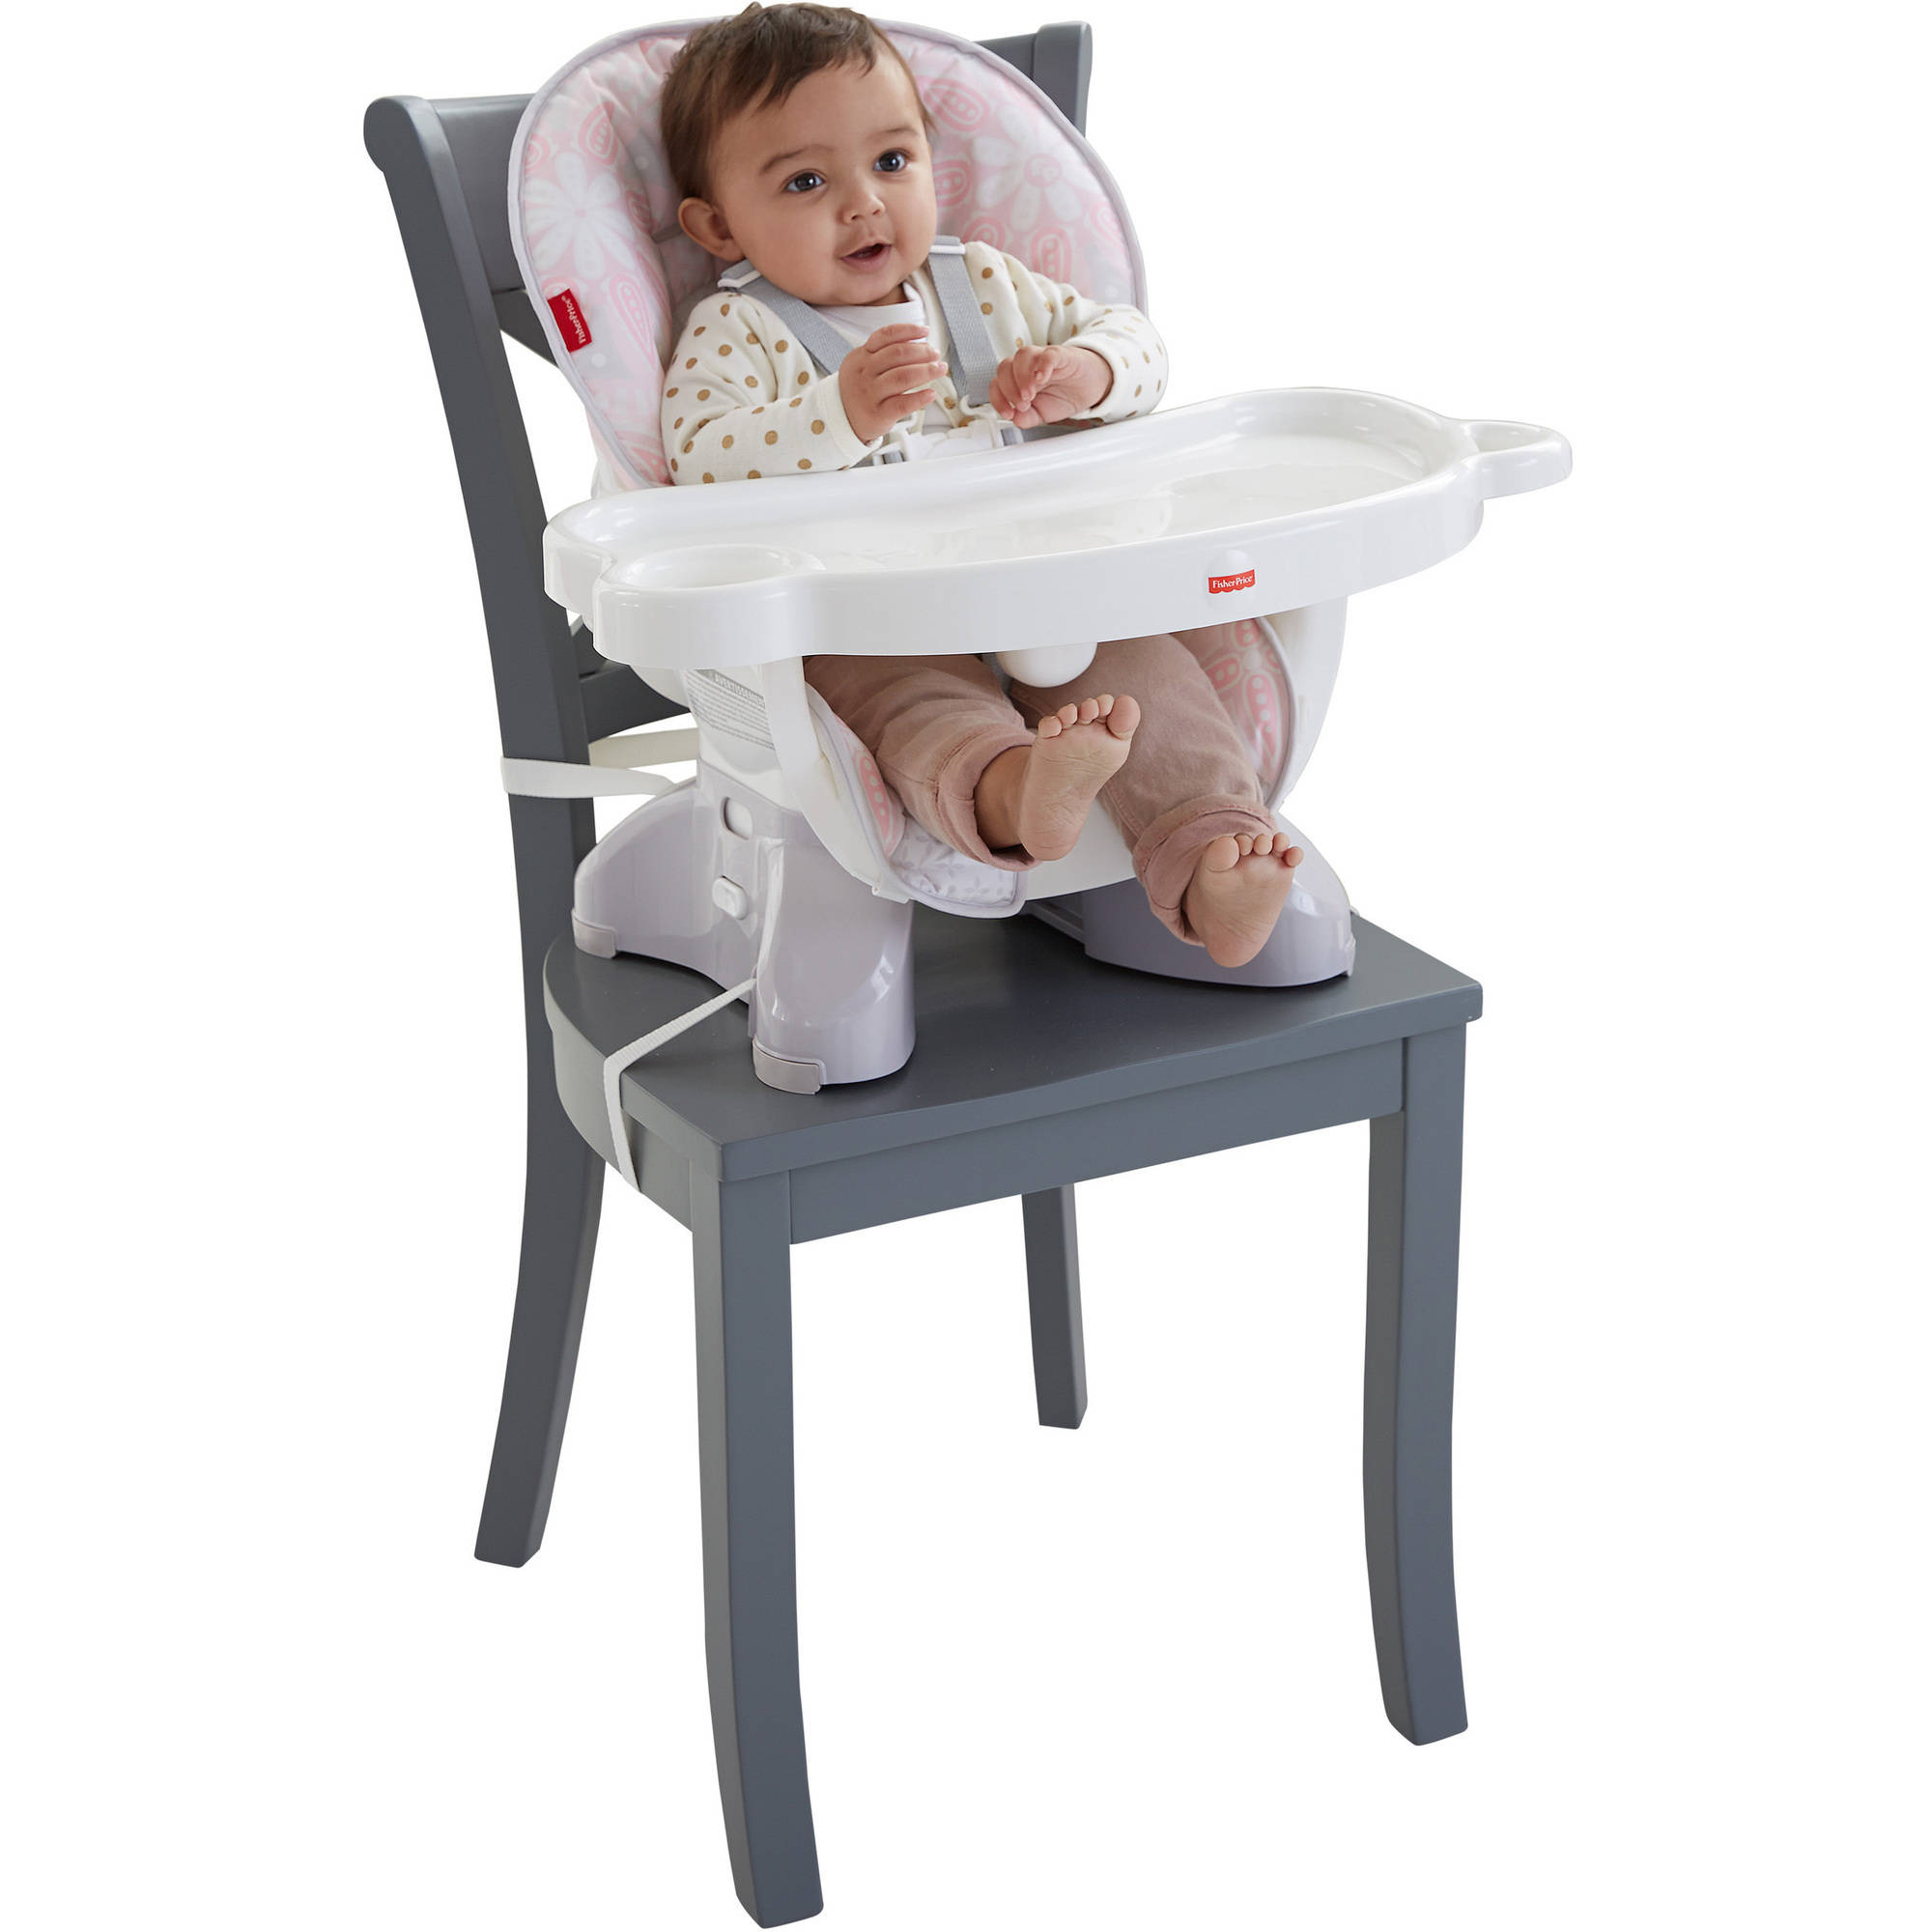 Fisher Price SpaceSaver High Chair Walmart